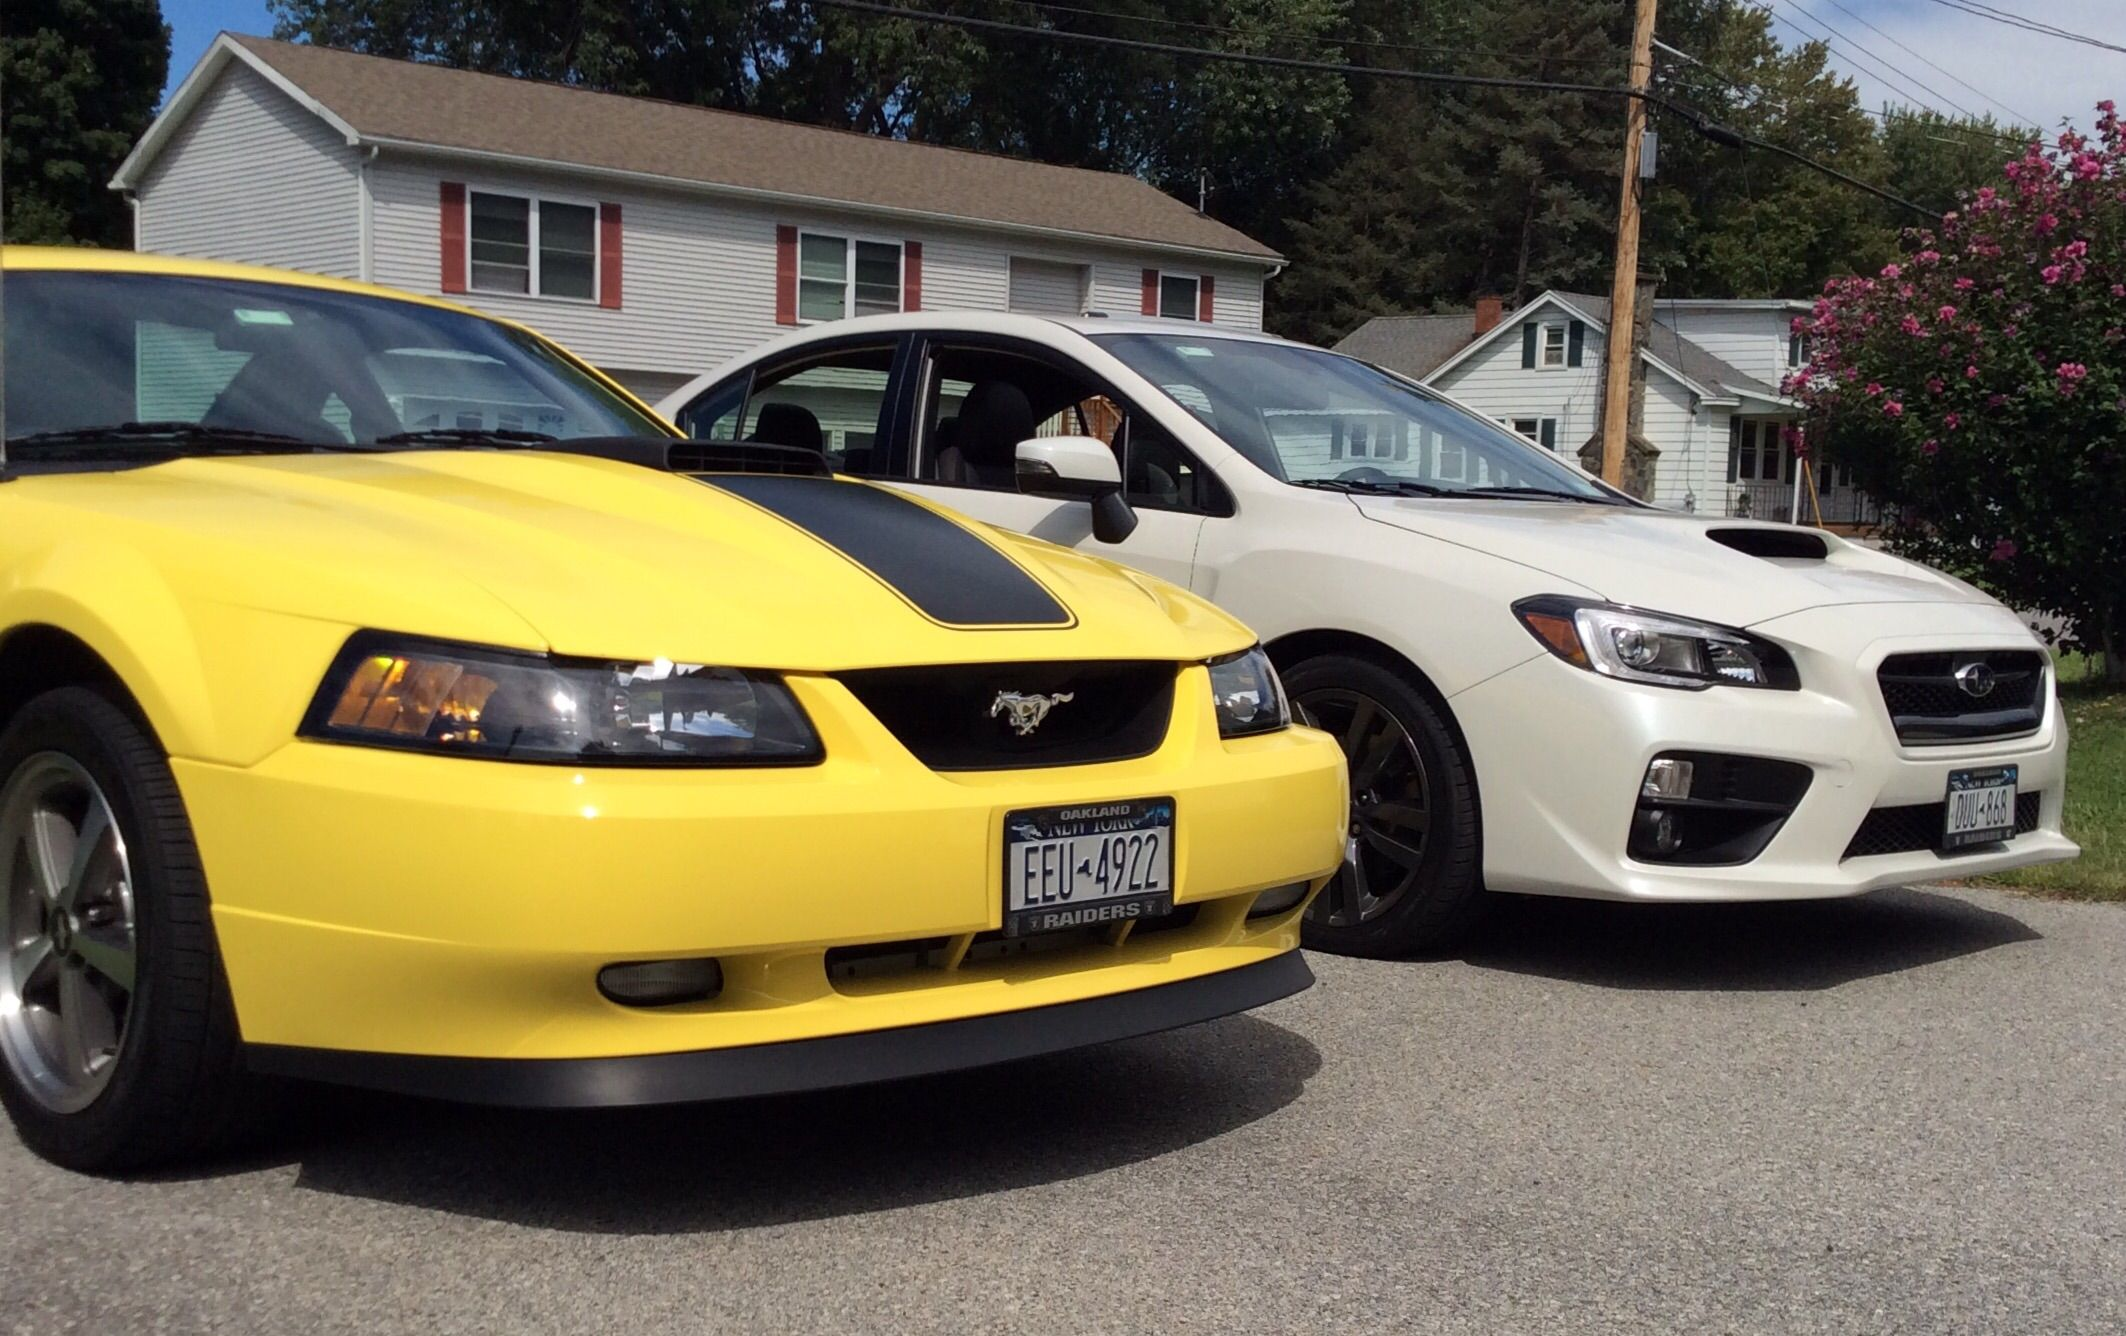 2003 Mustang Mach 1 & 2016 Subaru WRX My garage queen and daily